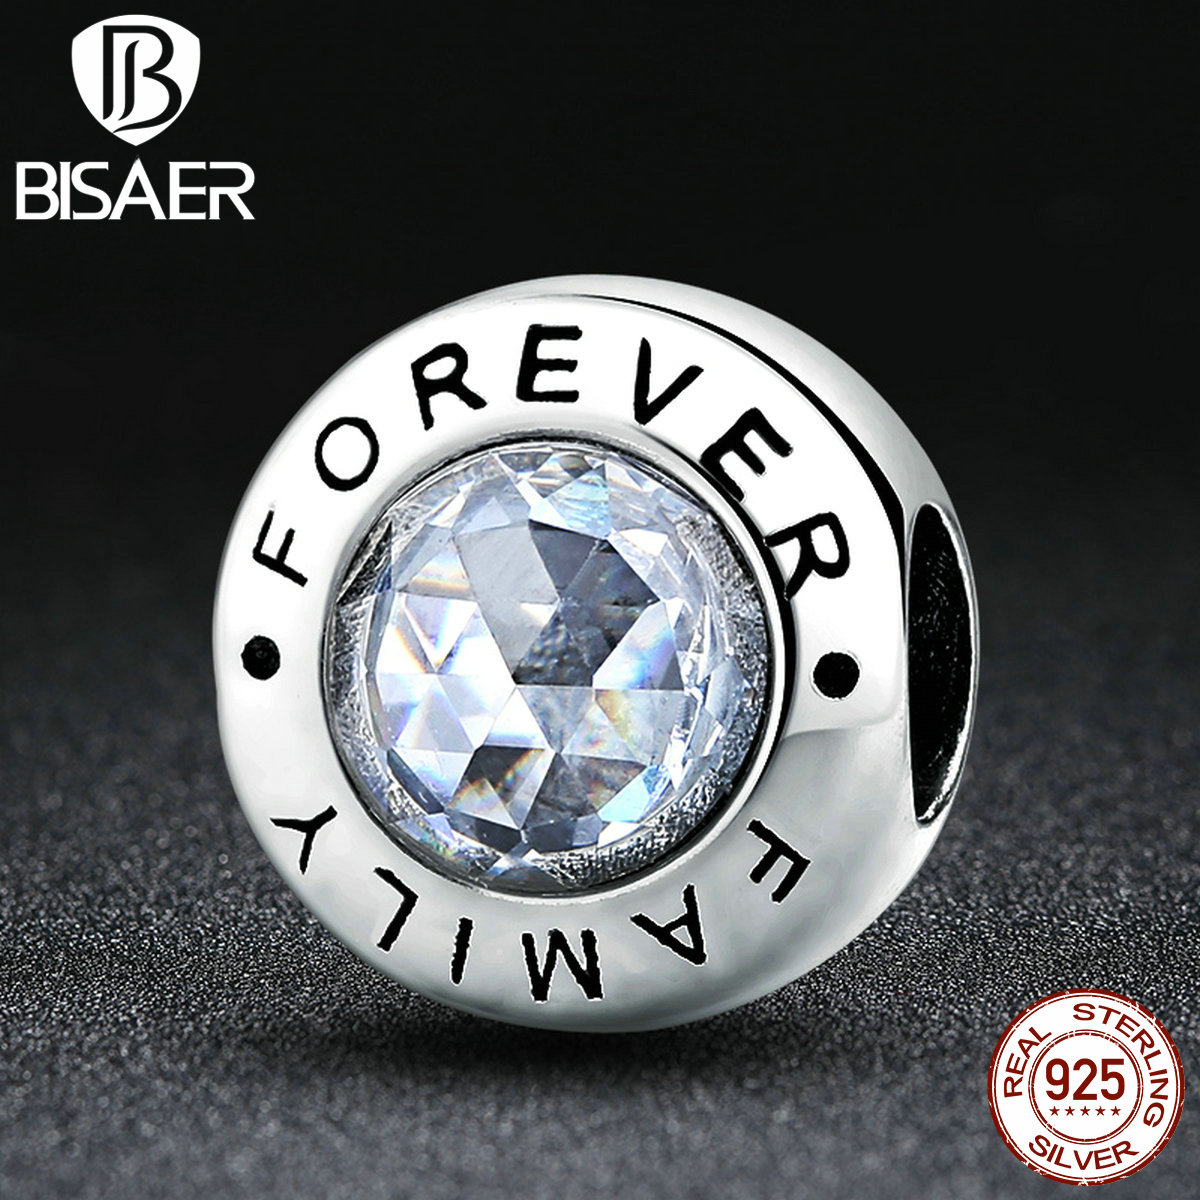 BISAER New Arrival Classic 925 Sterling Silver Family Forever, Clear CZ Bead Charm Fit Pan Bracelets Fashion Jewelry HJS378